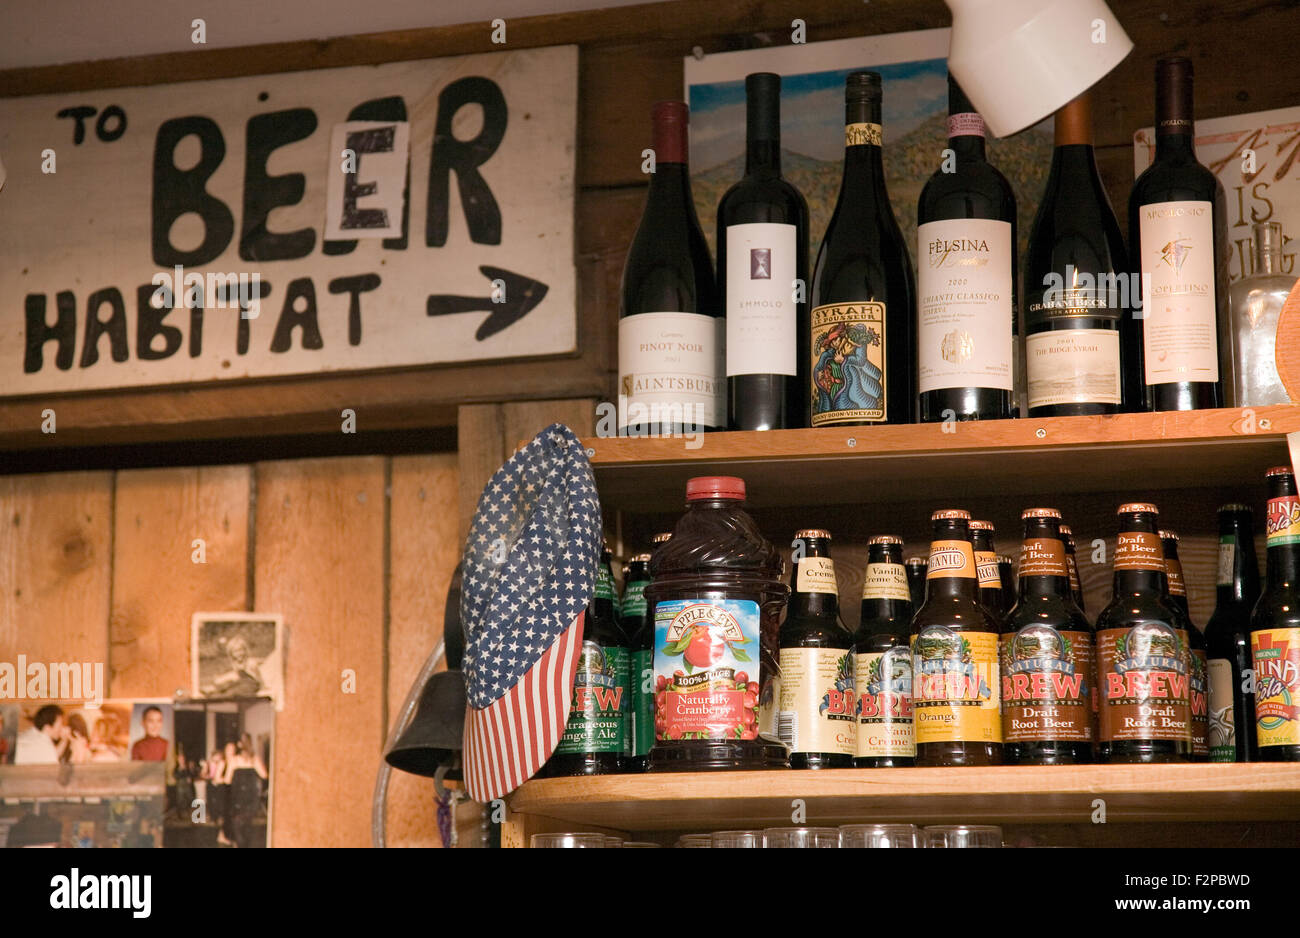 Alcohol selection wall at American Flatbread restaurant, Waitsfield, Vermont, USA Stock Photo